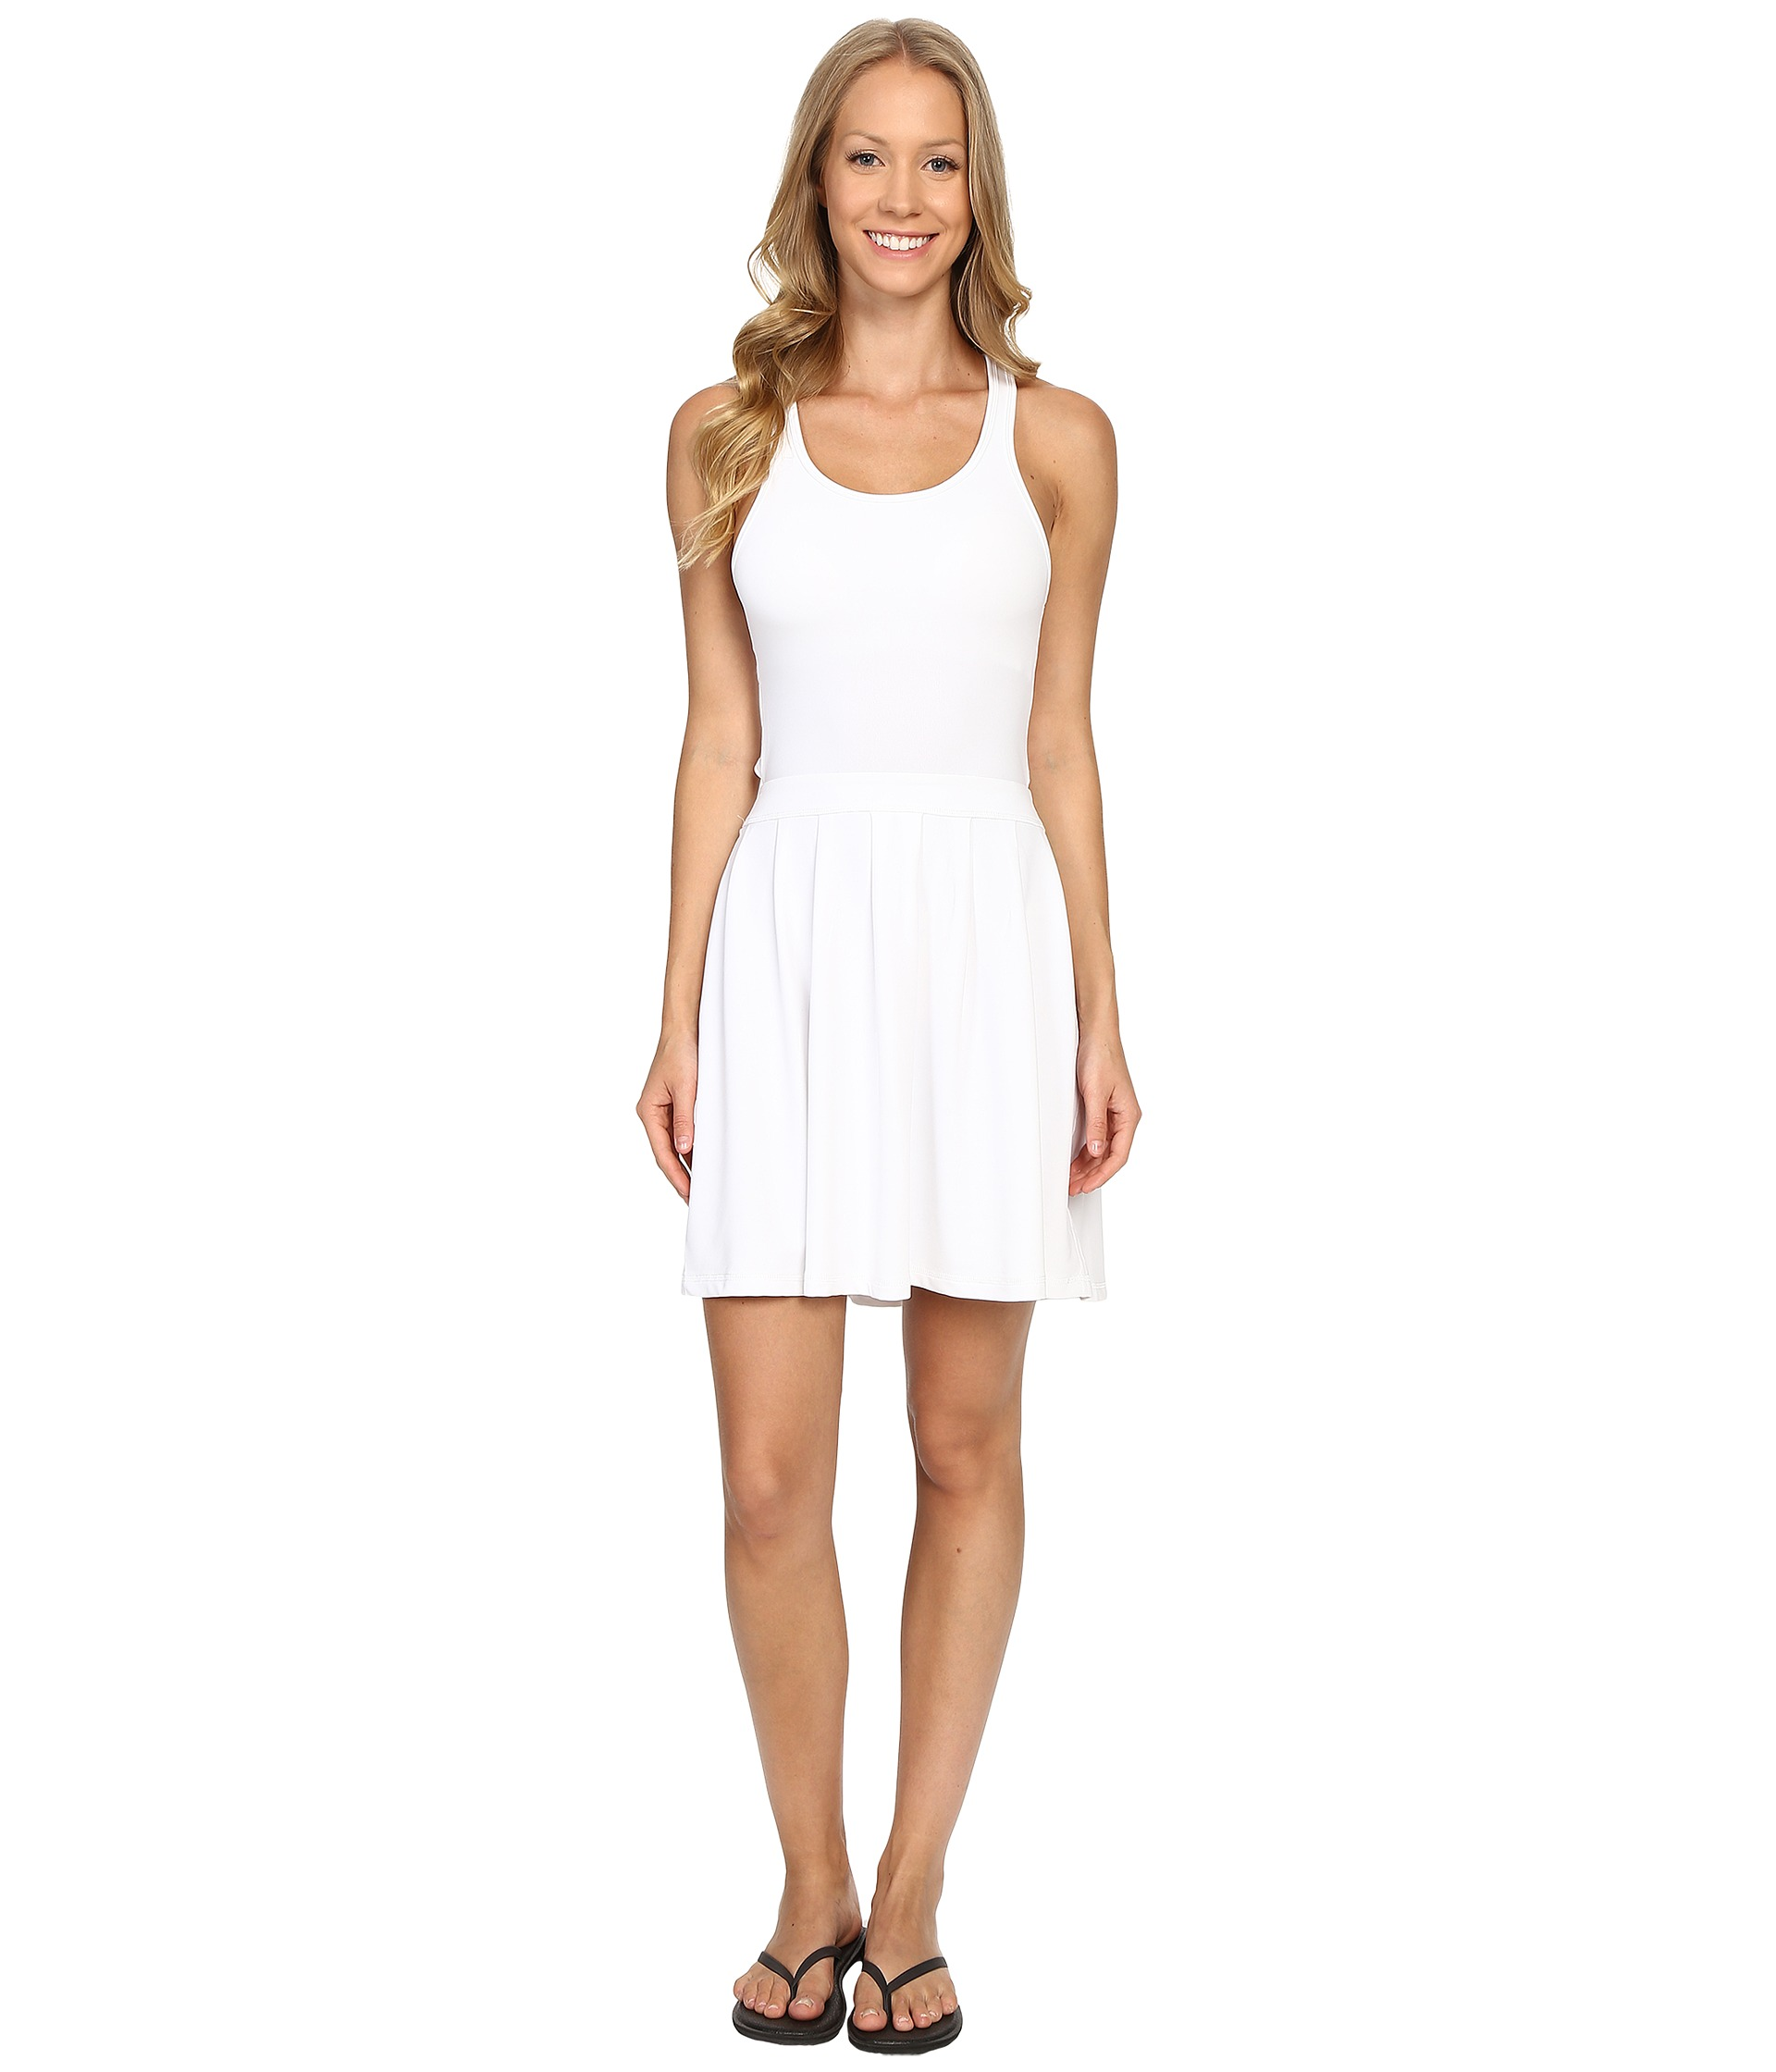 Dressing Point P Tonic Point Dress White Zappos Free Shipping Both Ways